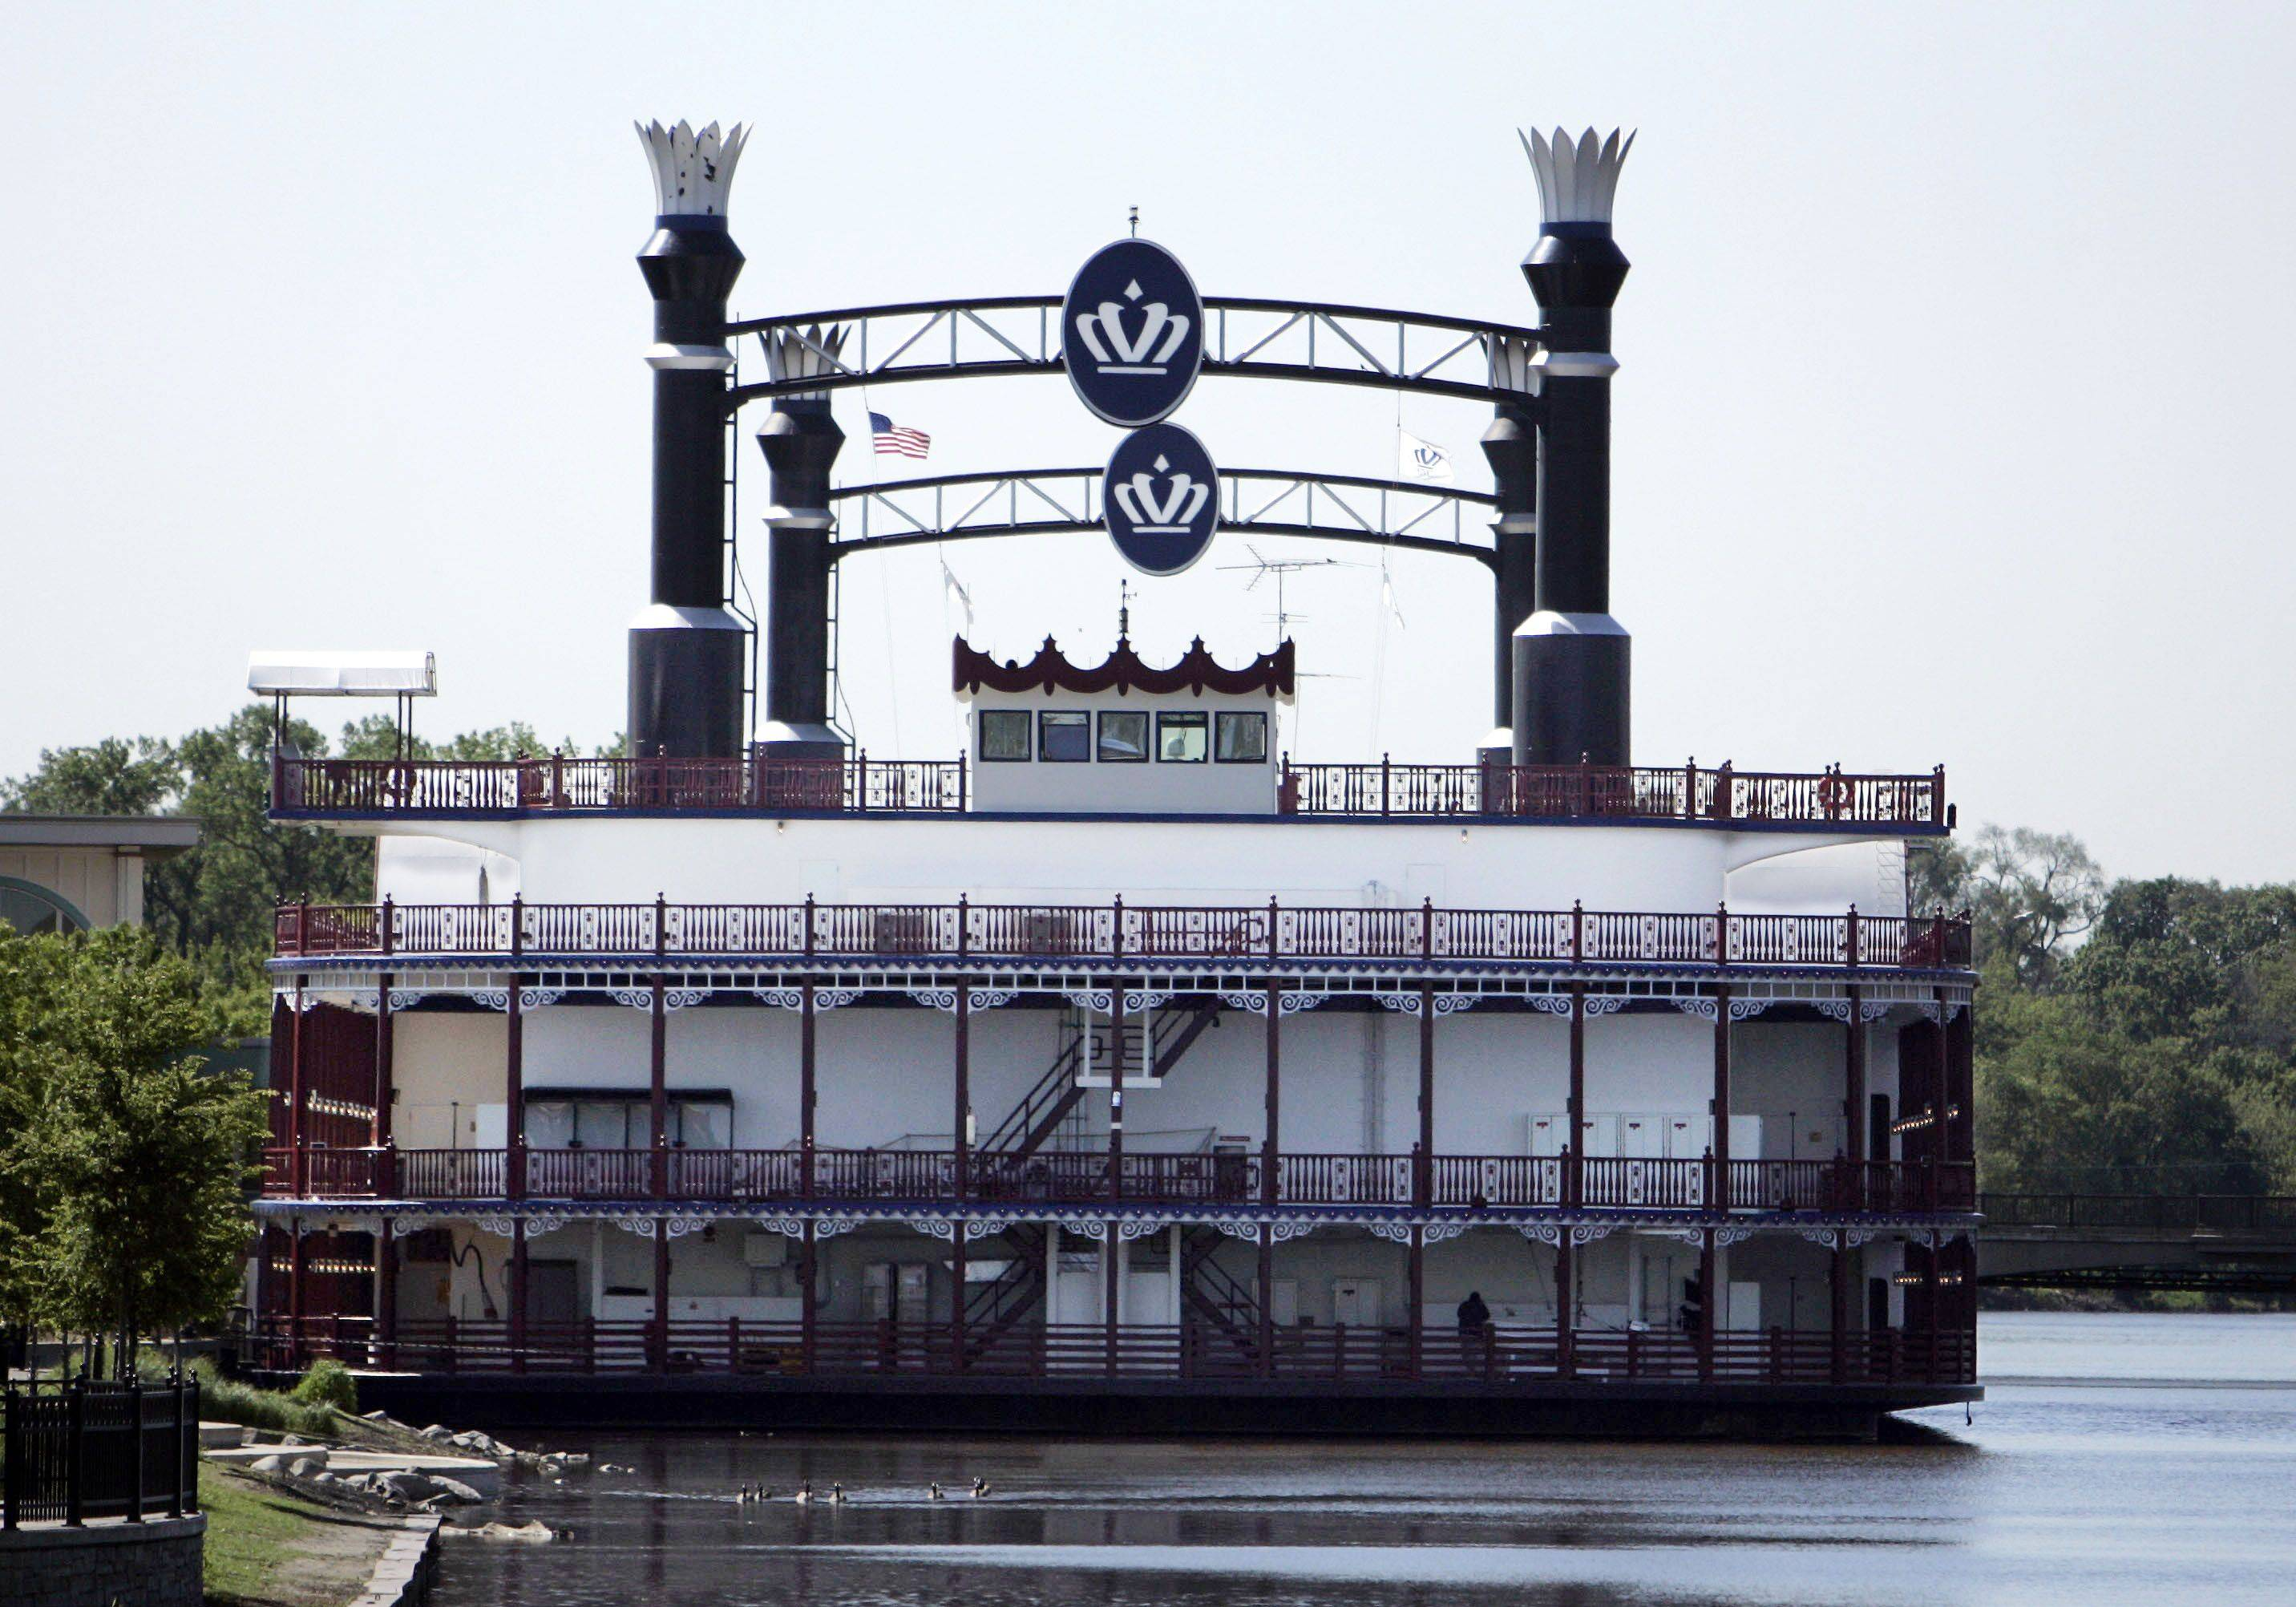 The Elgin riverboat casino